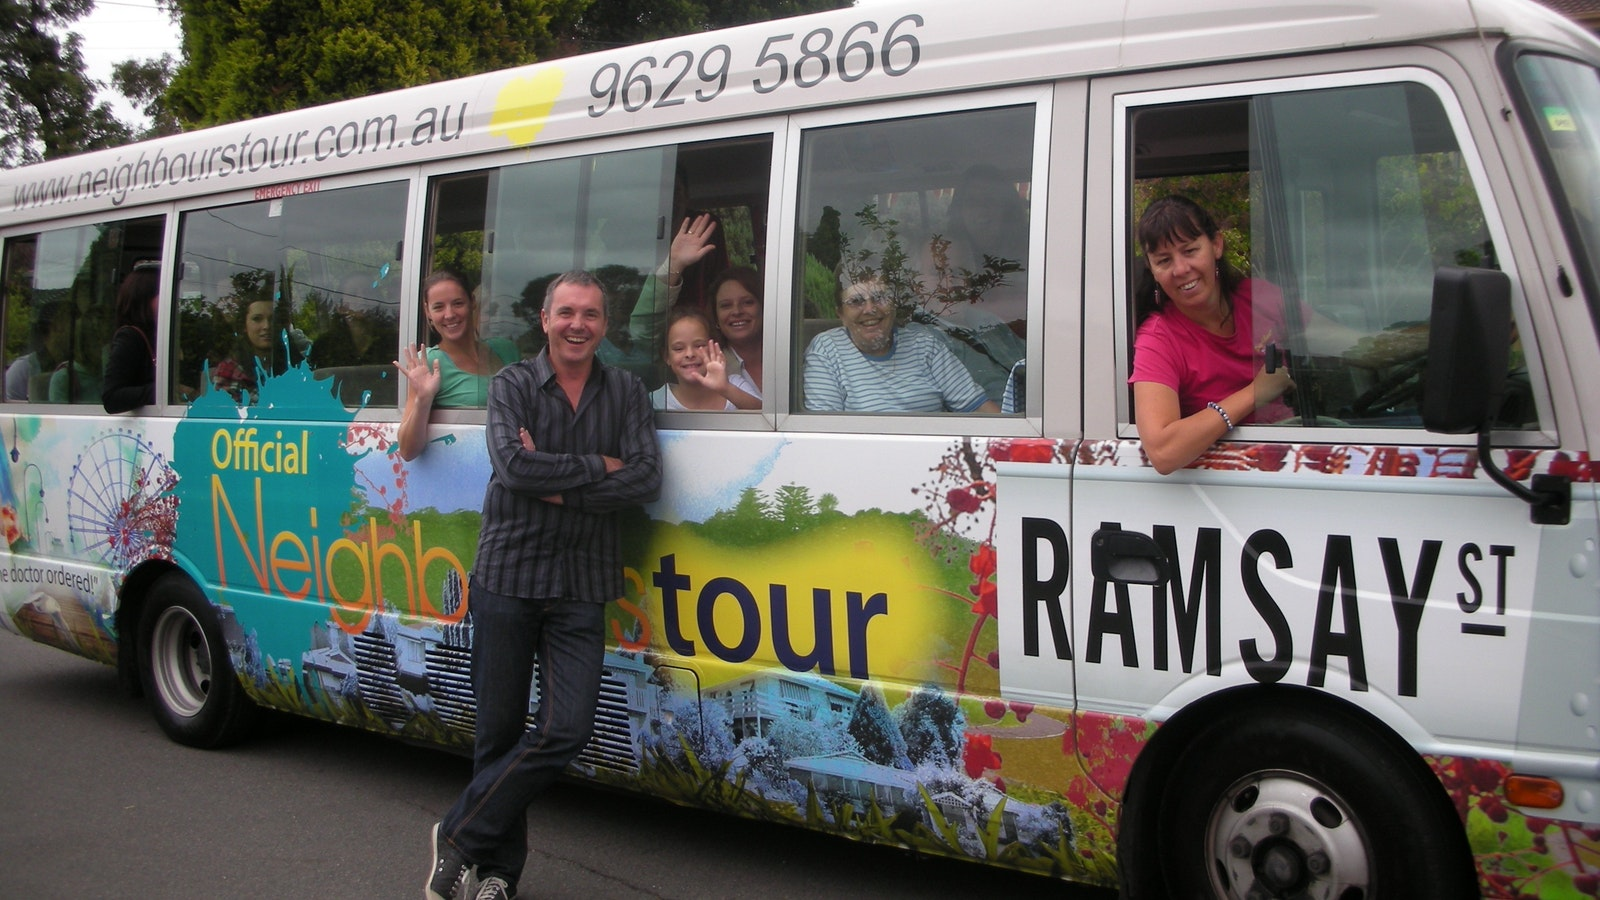 Dr Karl and the Neighbours bus